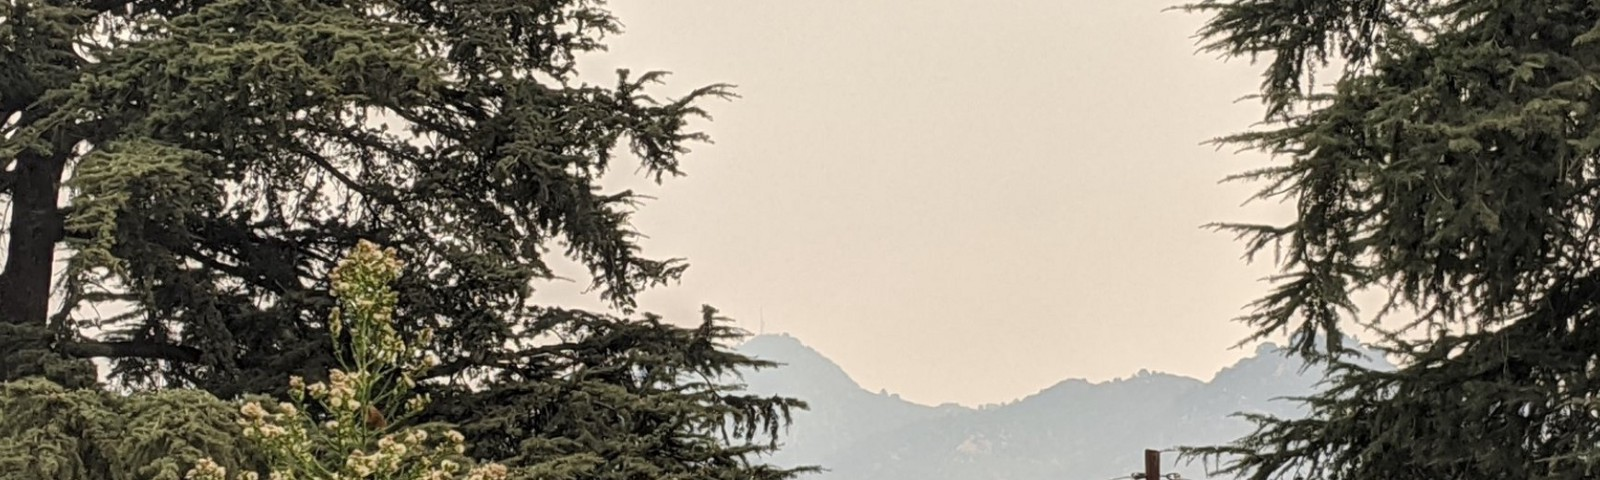 pine trees framing Mt. Wilson in the background in smoky haze